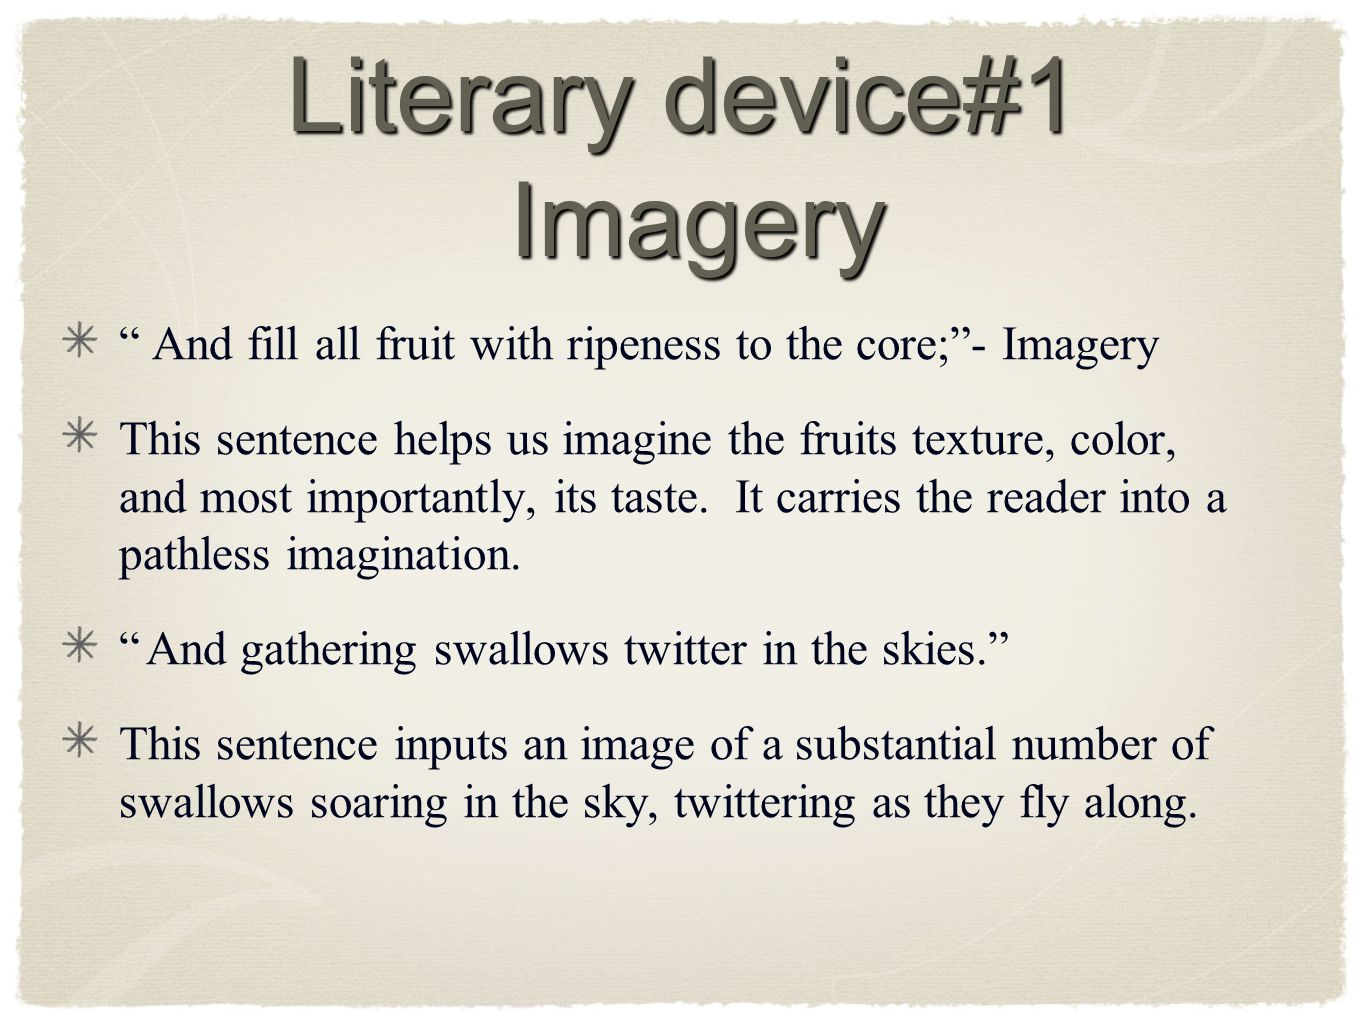 Literary device#1 Imagery